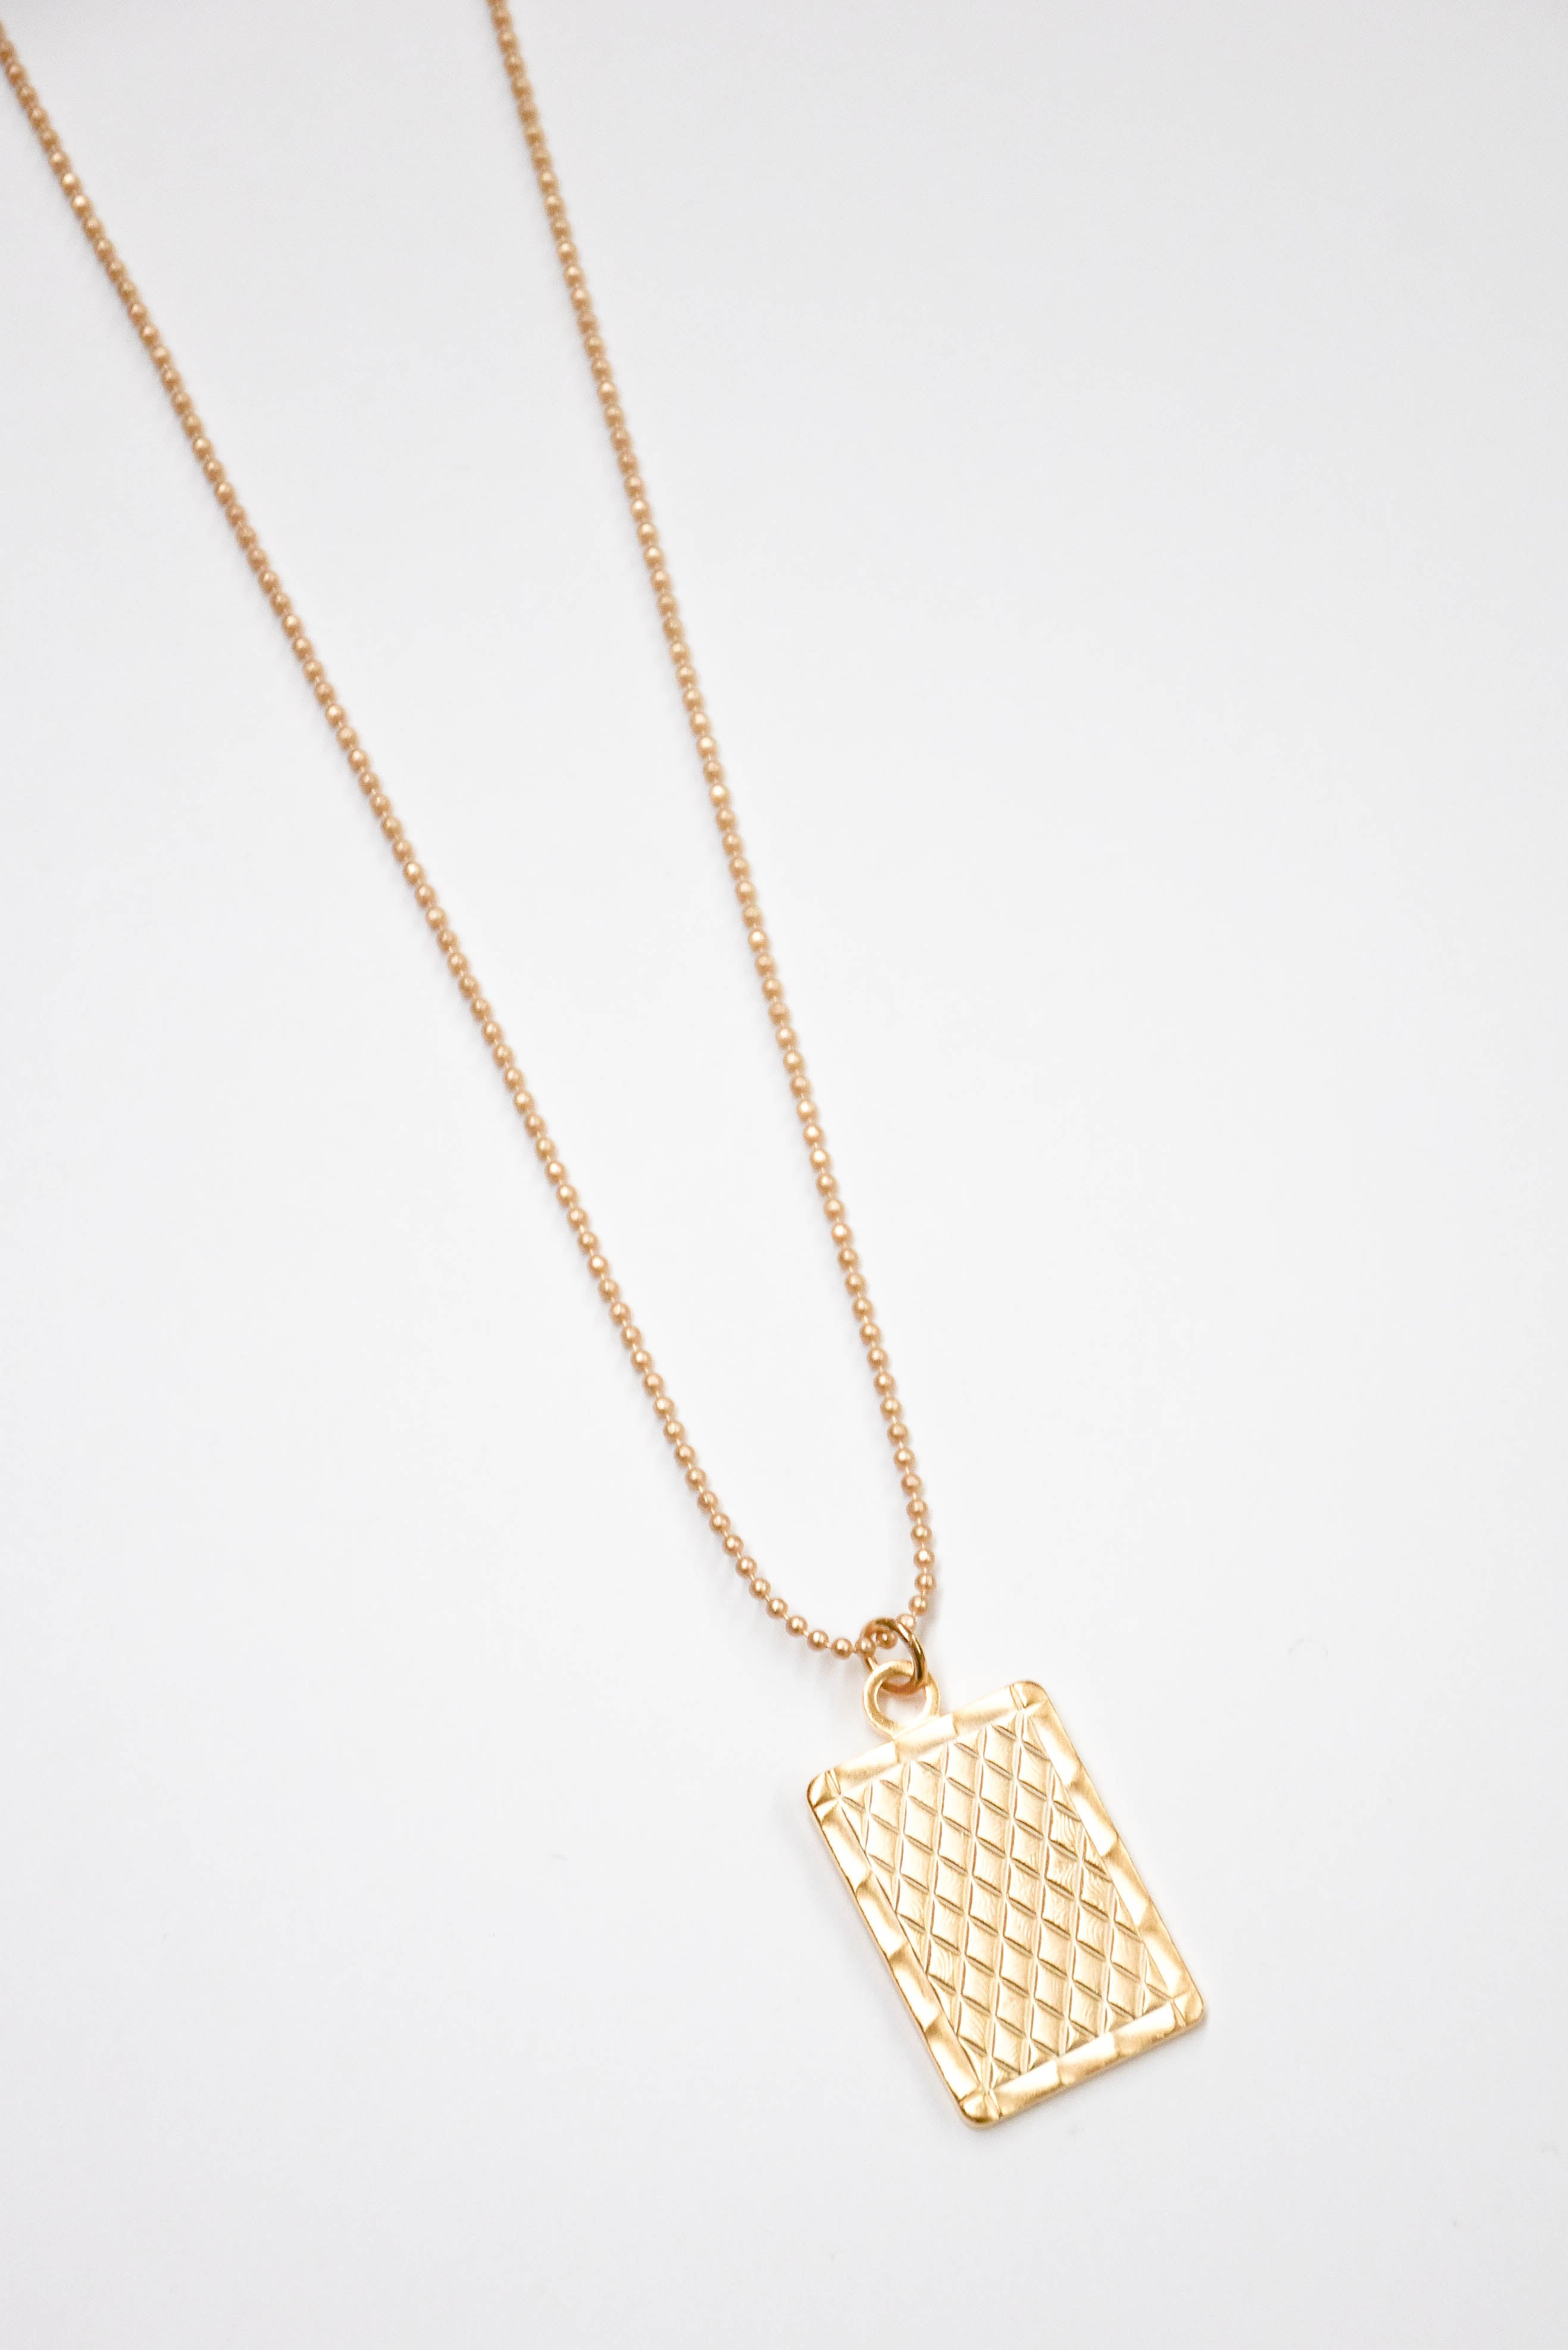 B. Alli Kaja Quilted Pendant Necklace